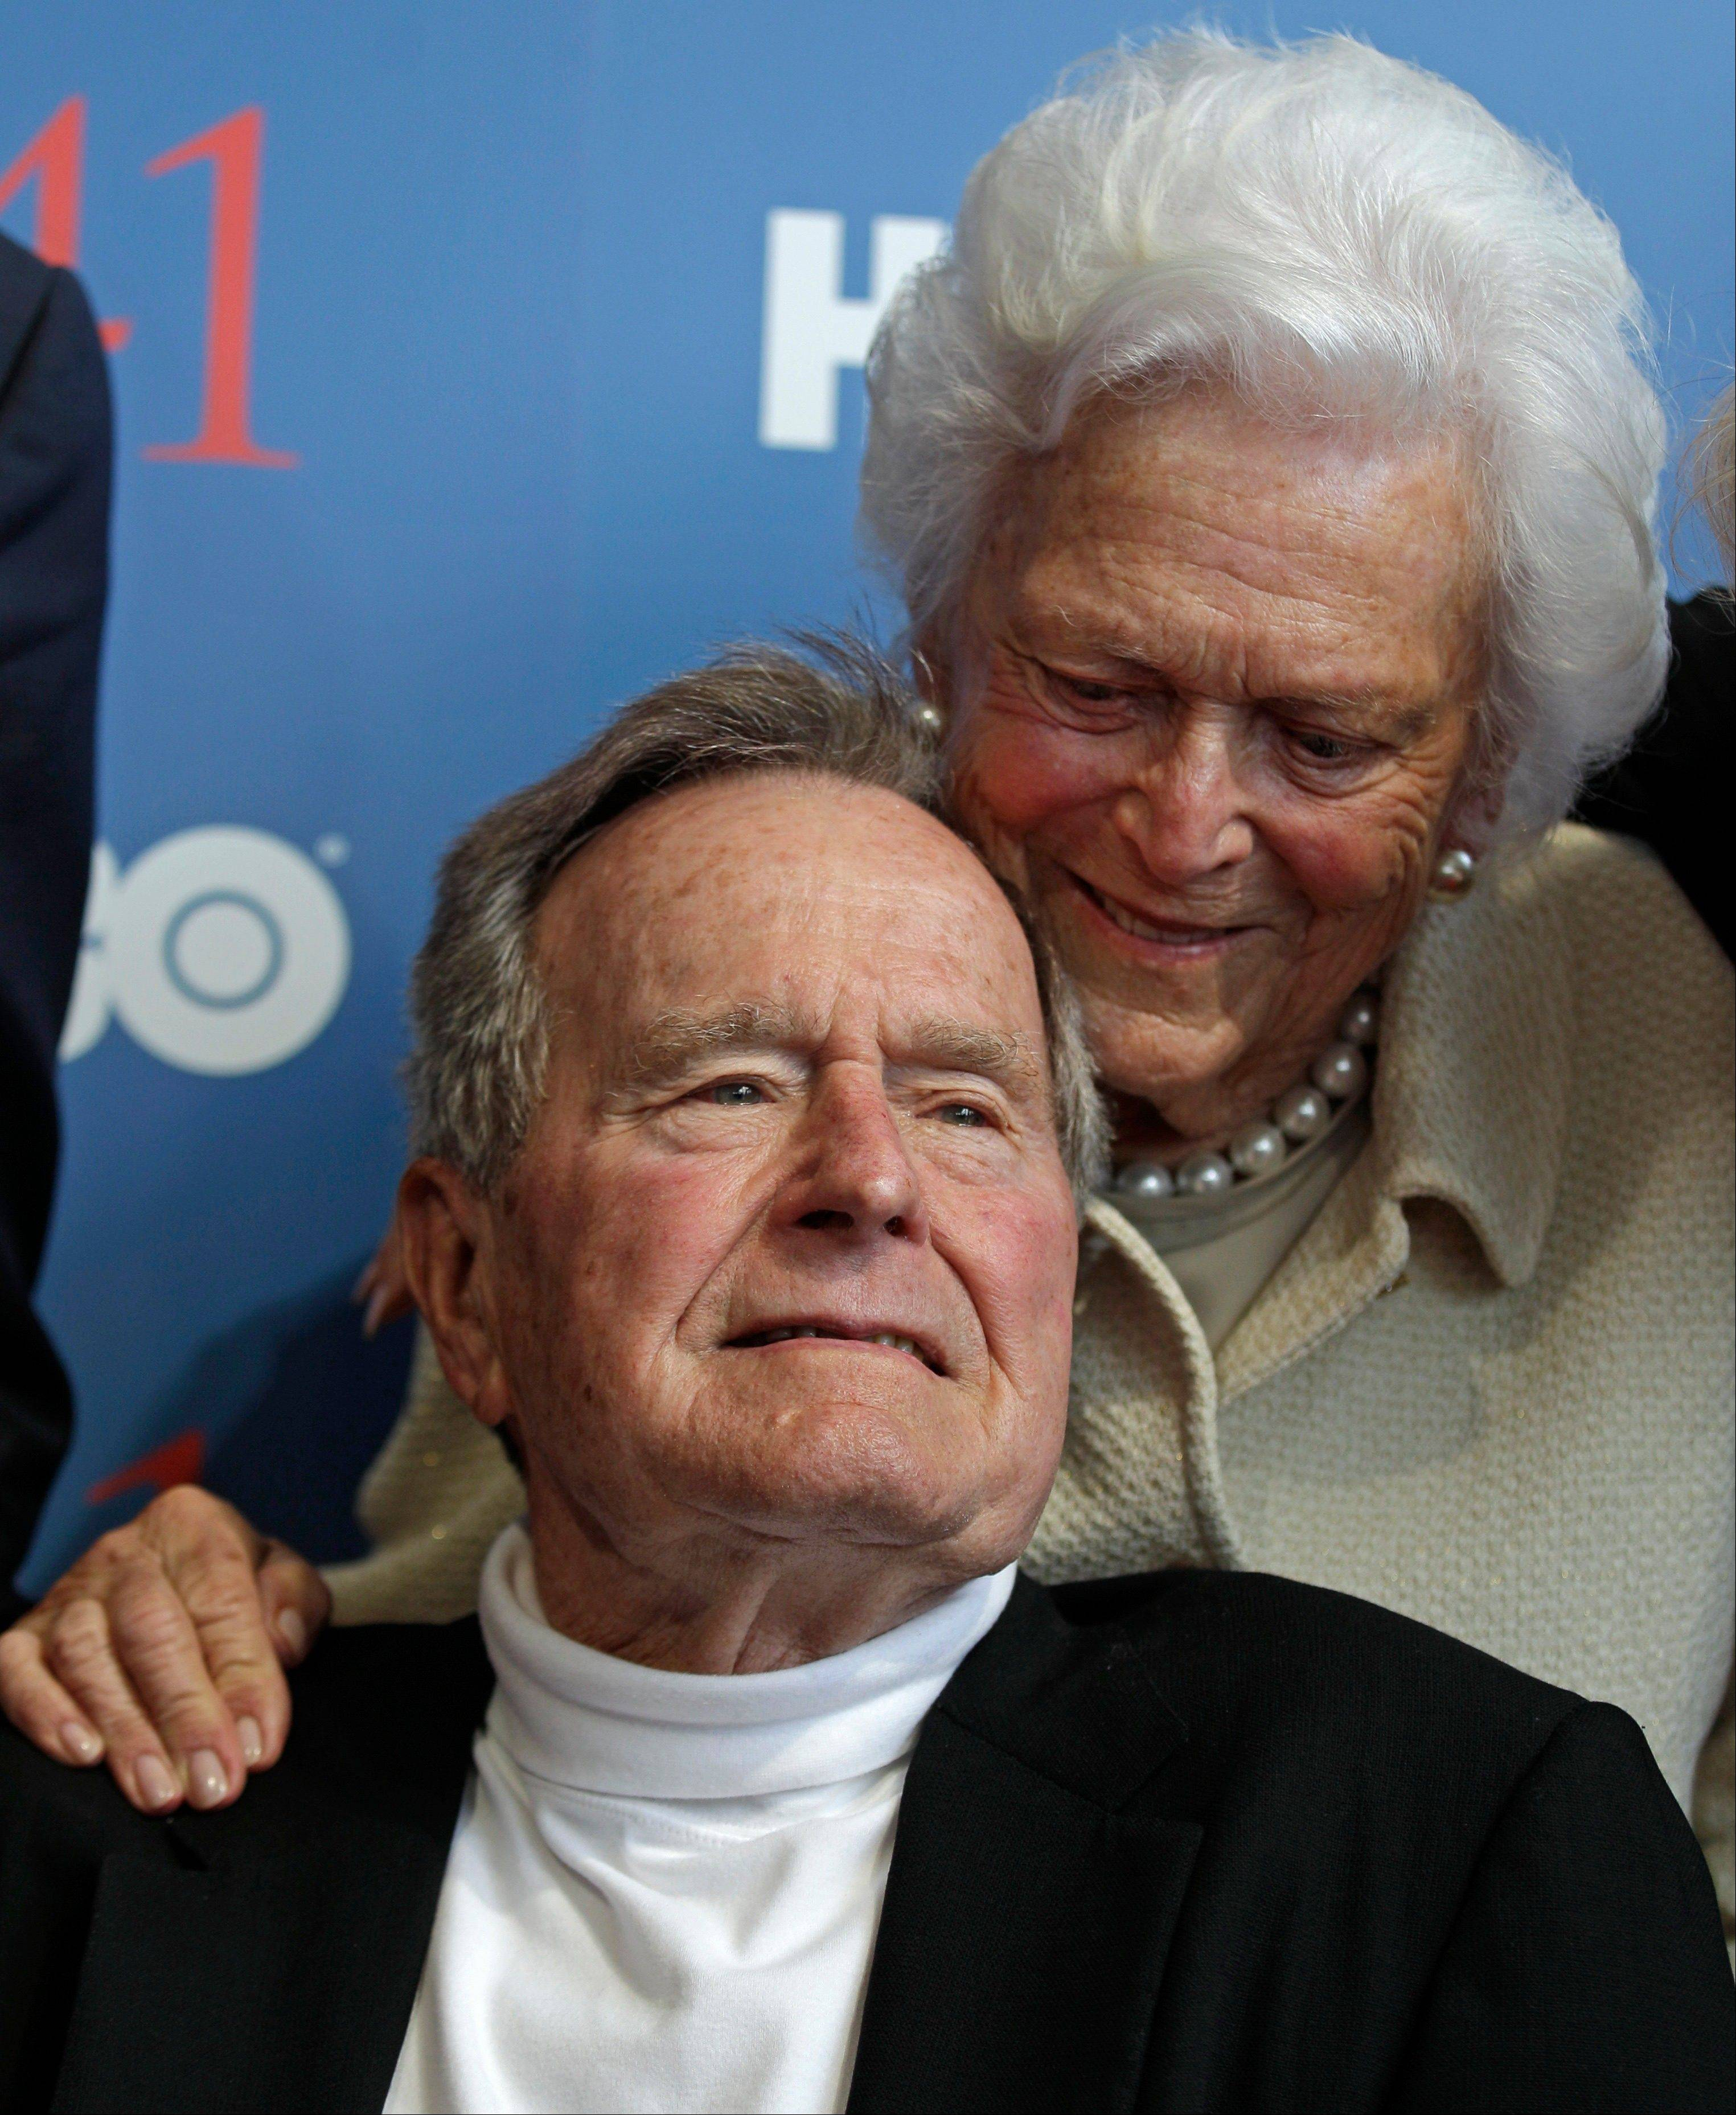 In this June 2012 photo, President George H.W. Bush, and his wife, Barbara, arrive for the premiere of HBO's documentary about his life in Kennebunkport, Maine. A criminal investigation is under way after a hacker apparently accessed private photos and emails sent between members of the Bush family, including both former presidents.